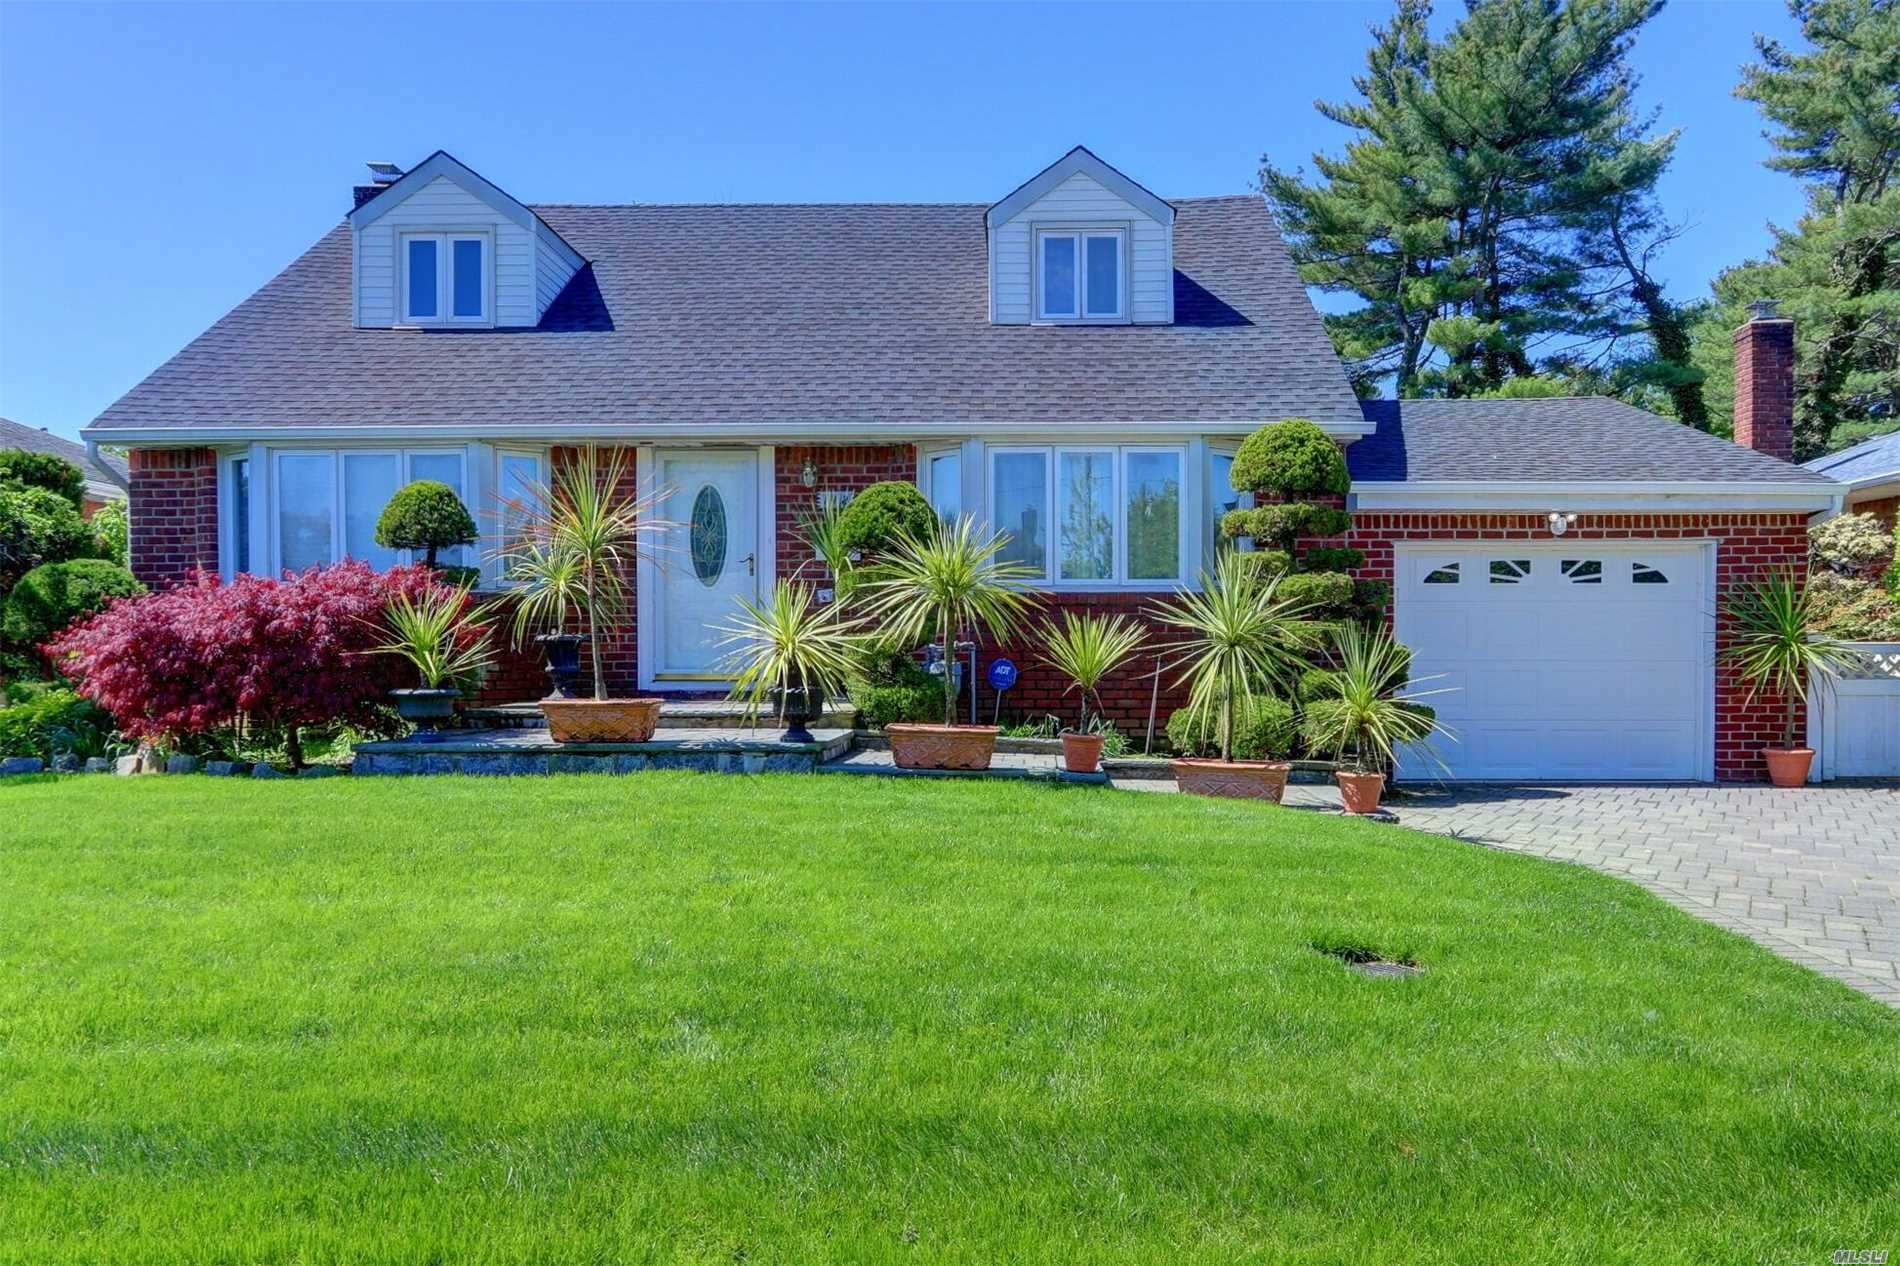 Immaculate expanded cape nestled on beautiful tree lined street, Large kitchen, living room, dining room, over-sized family room for entertaining, 4 bedrooms and 2 full bathrooms. Plus new roof . Make this your place to call HOME!